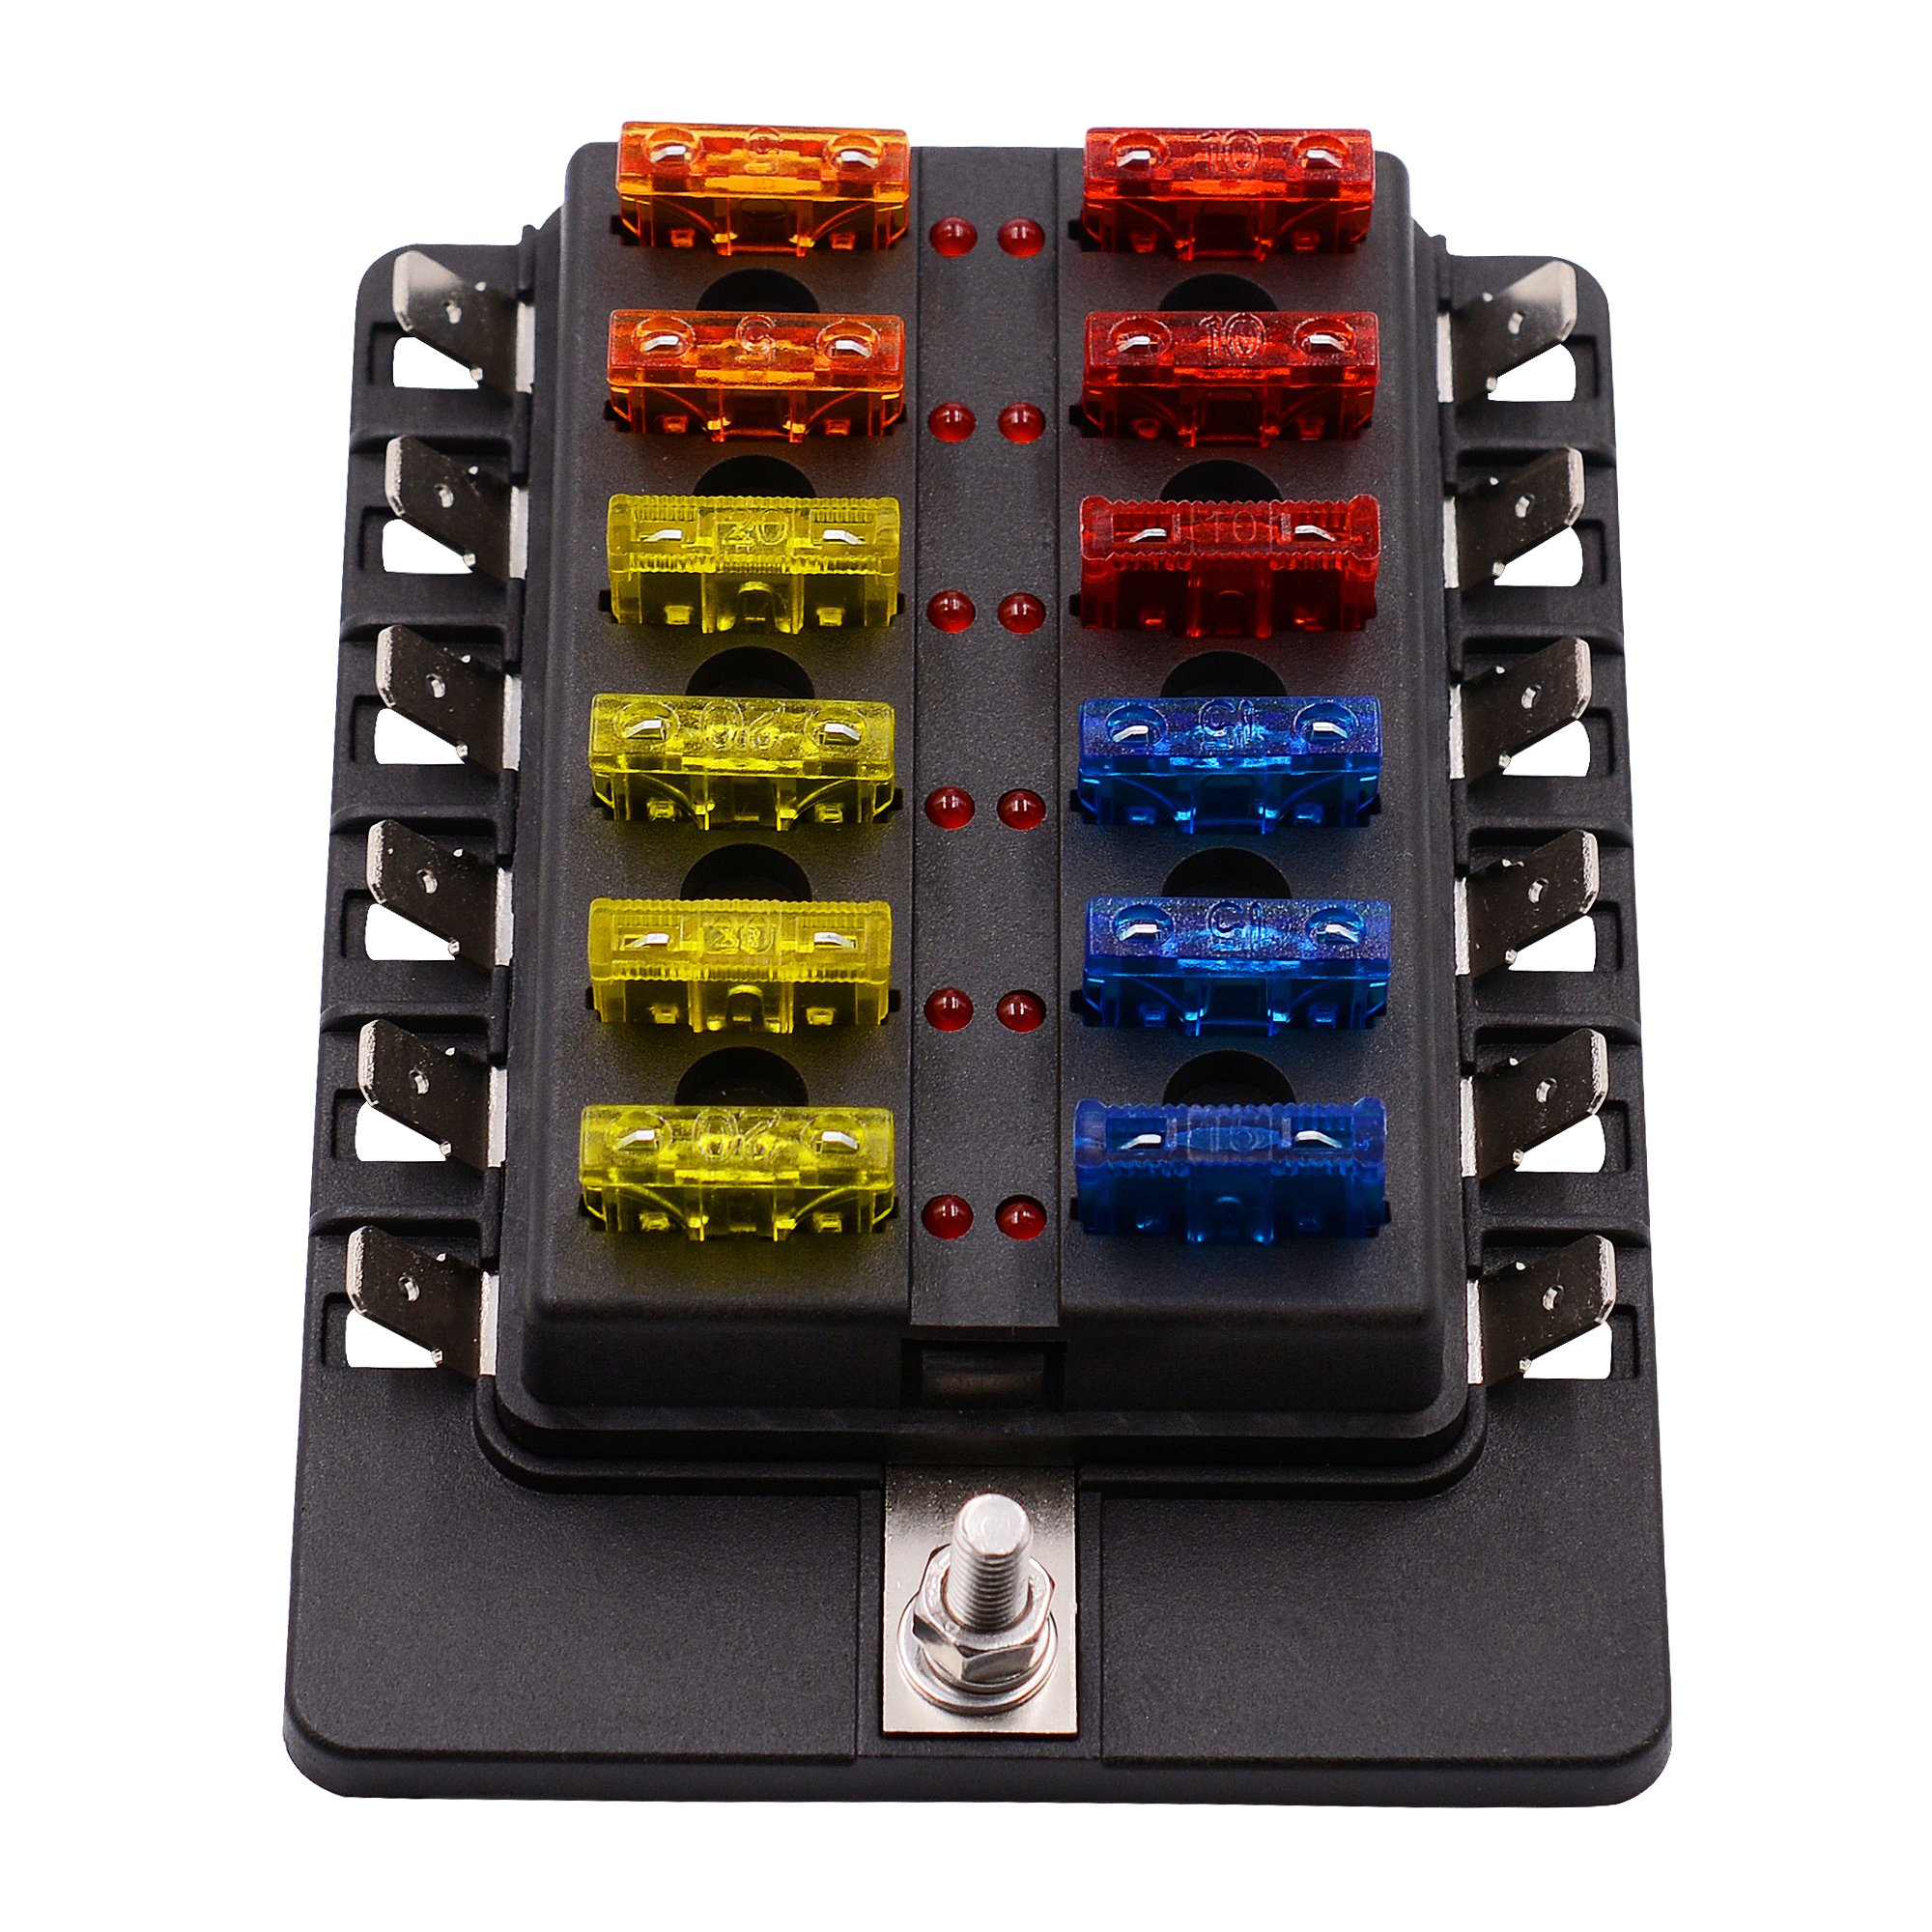 12 Ways LED Warning Blade Fuse Box Holder Fuse Block for Car, Boat, Marine Trike (Plate Copper Terminal)